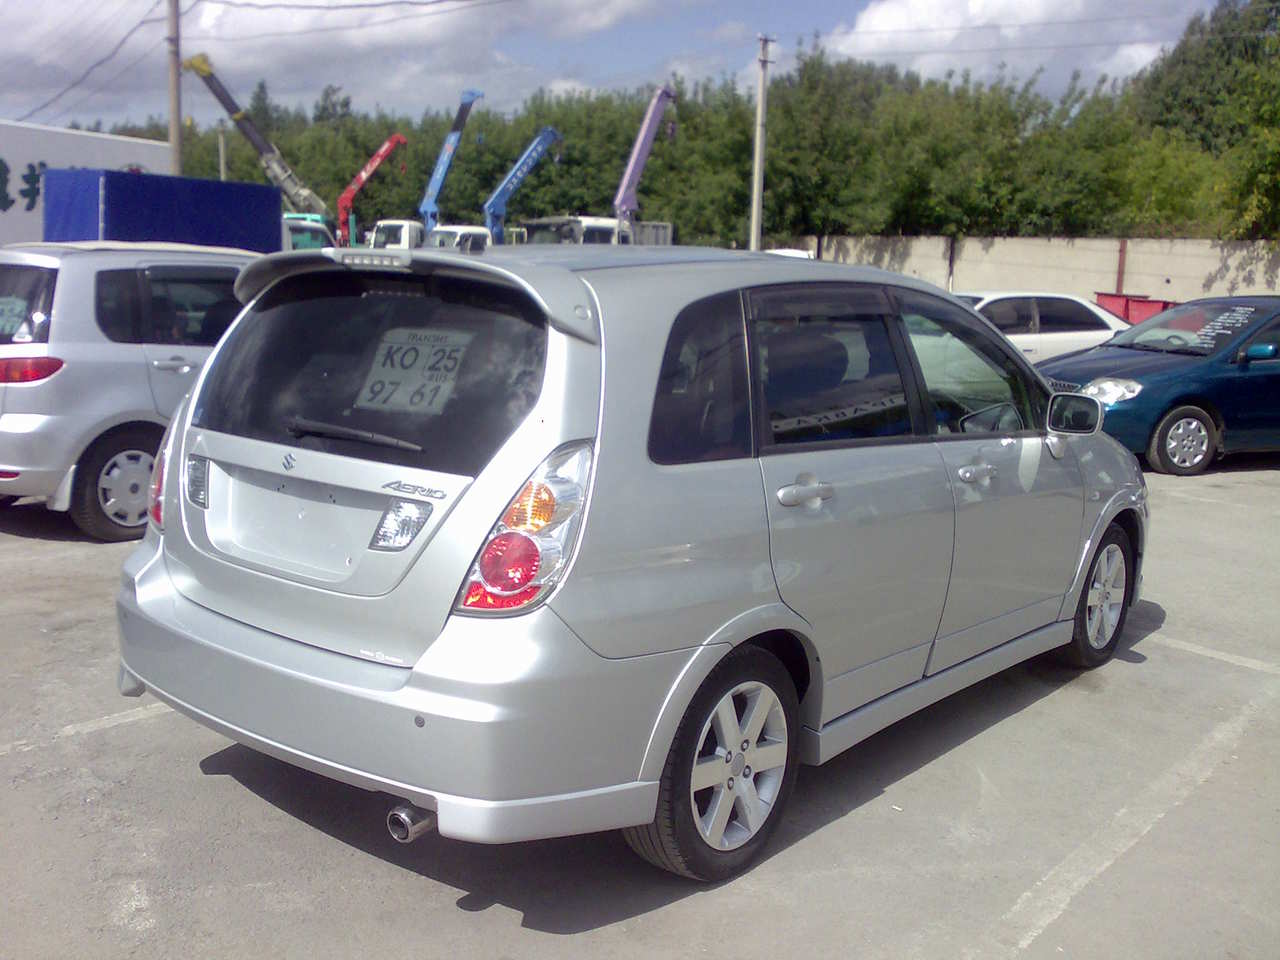 hight resolution of photo 1 enlarge photo 1280x960 2005 suzuki aerio wagon photos